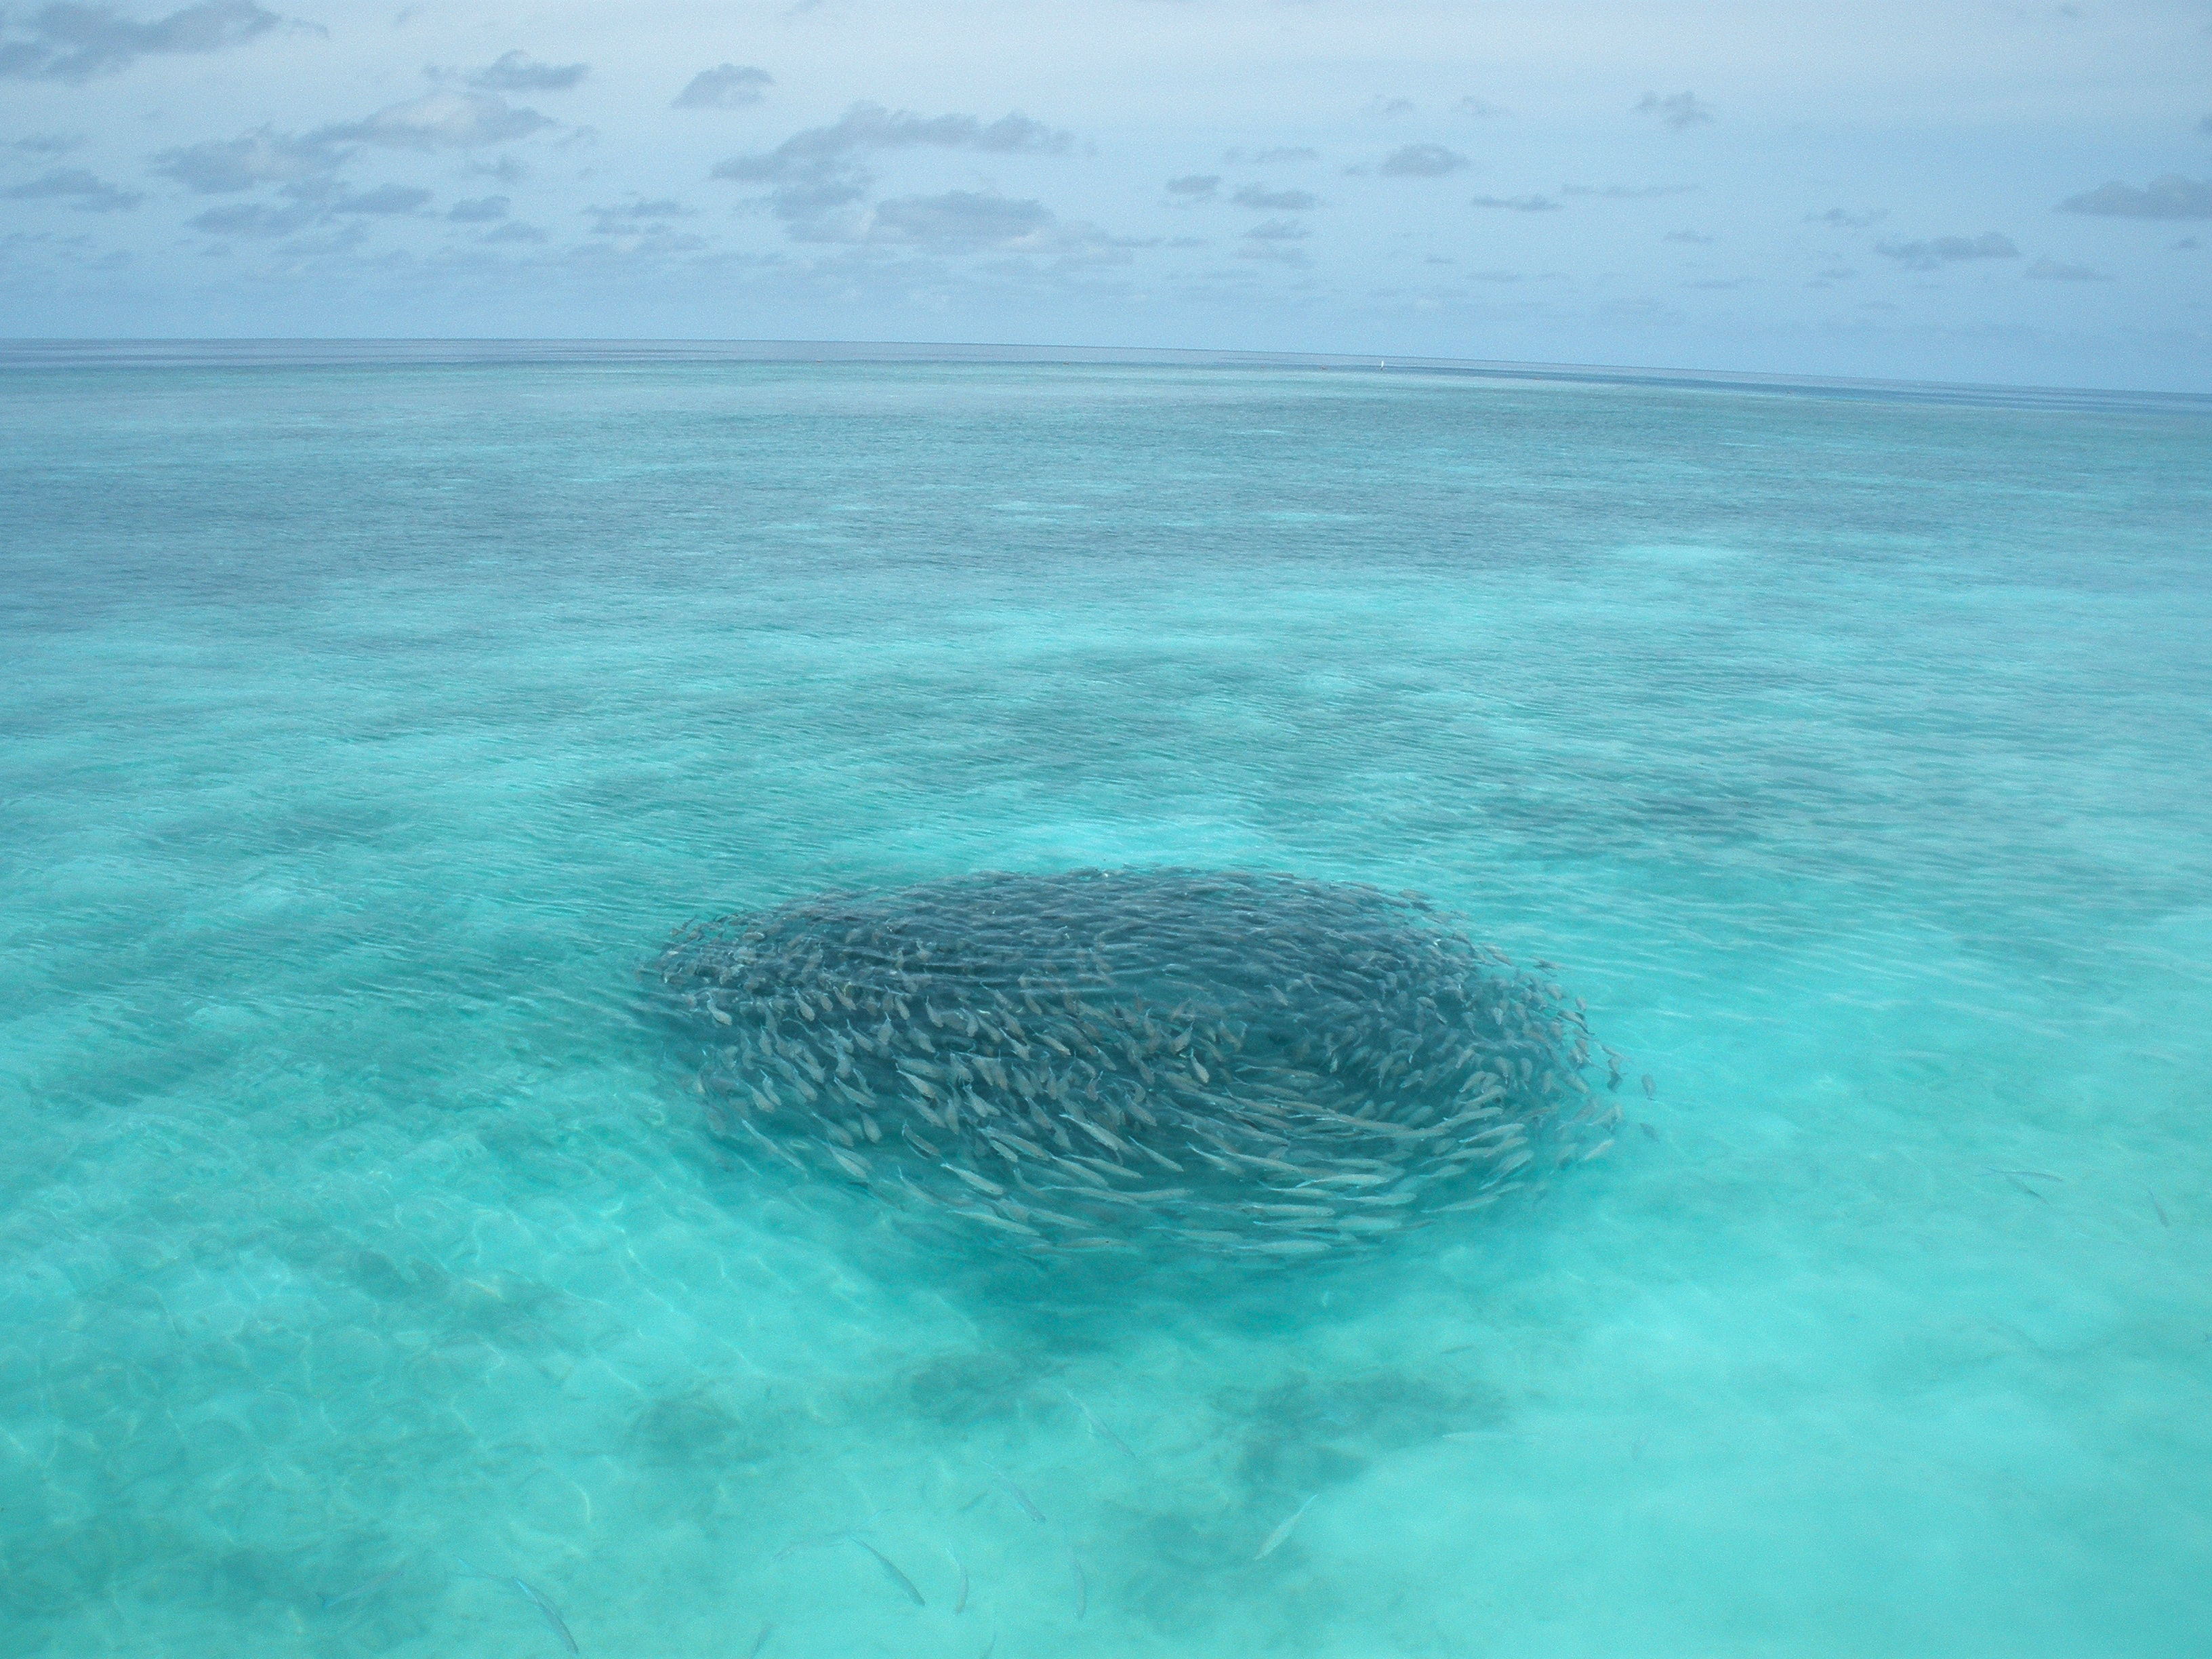 school of gray fish in body of water